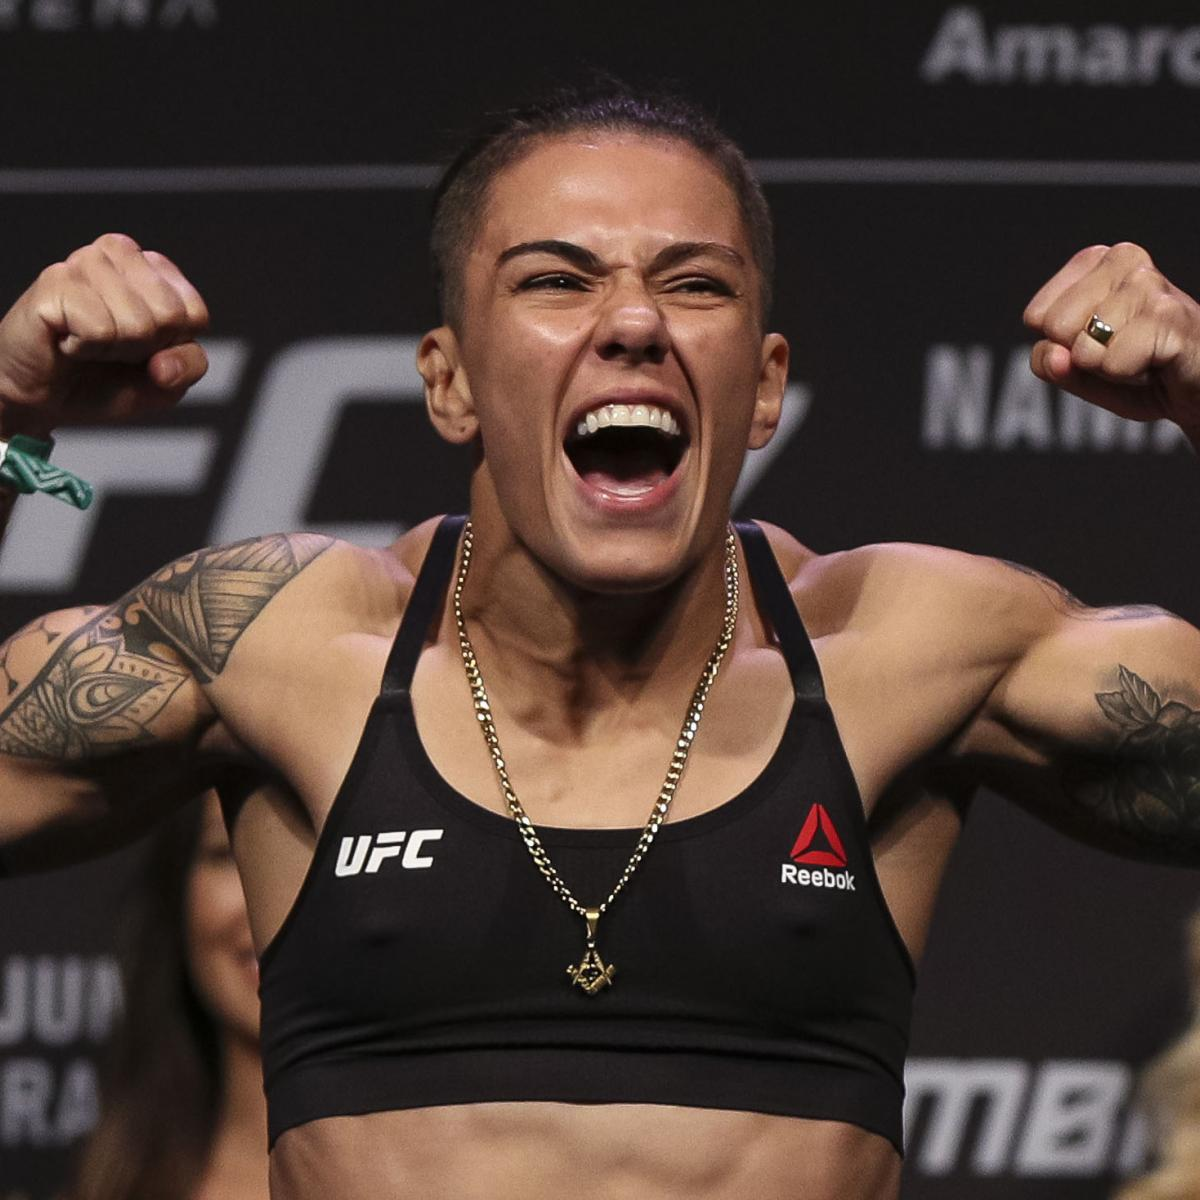 """Jessica Andrade joined the ranks of UFC champions with a thunderous second-round knockout win over """"Thug"""" Rose Namajunas to become the women's strawweight champion in the main event of UFC 237 from Rio de Janeiro on Saturday ..."""